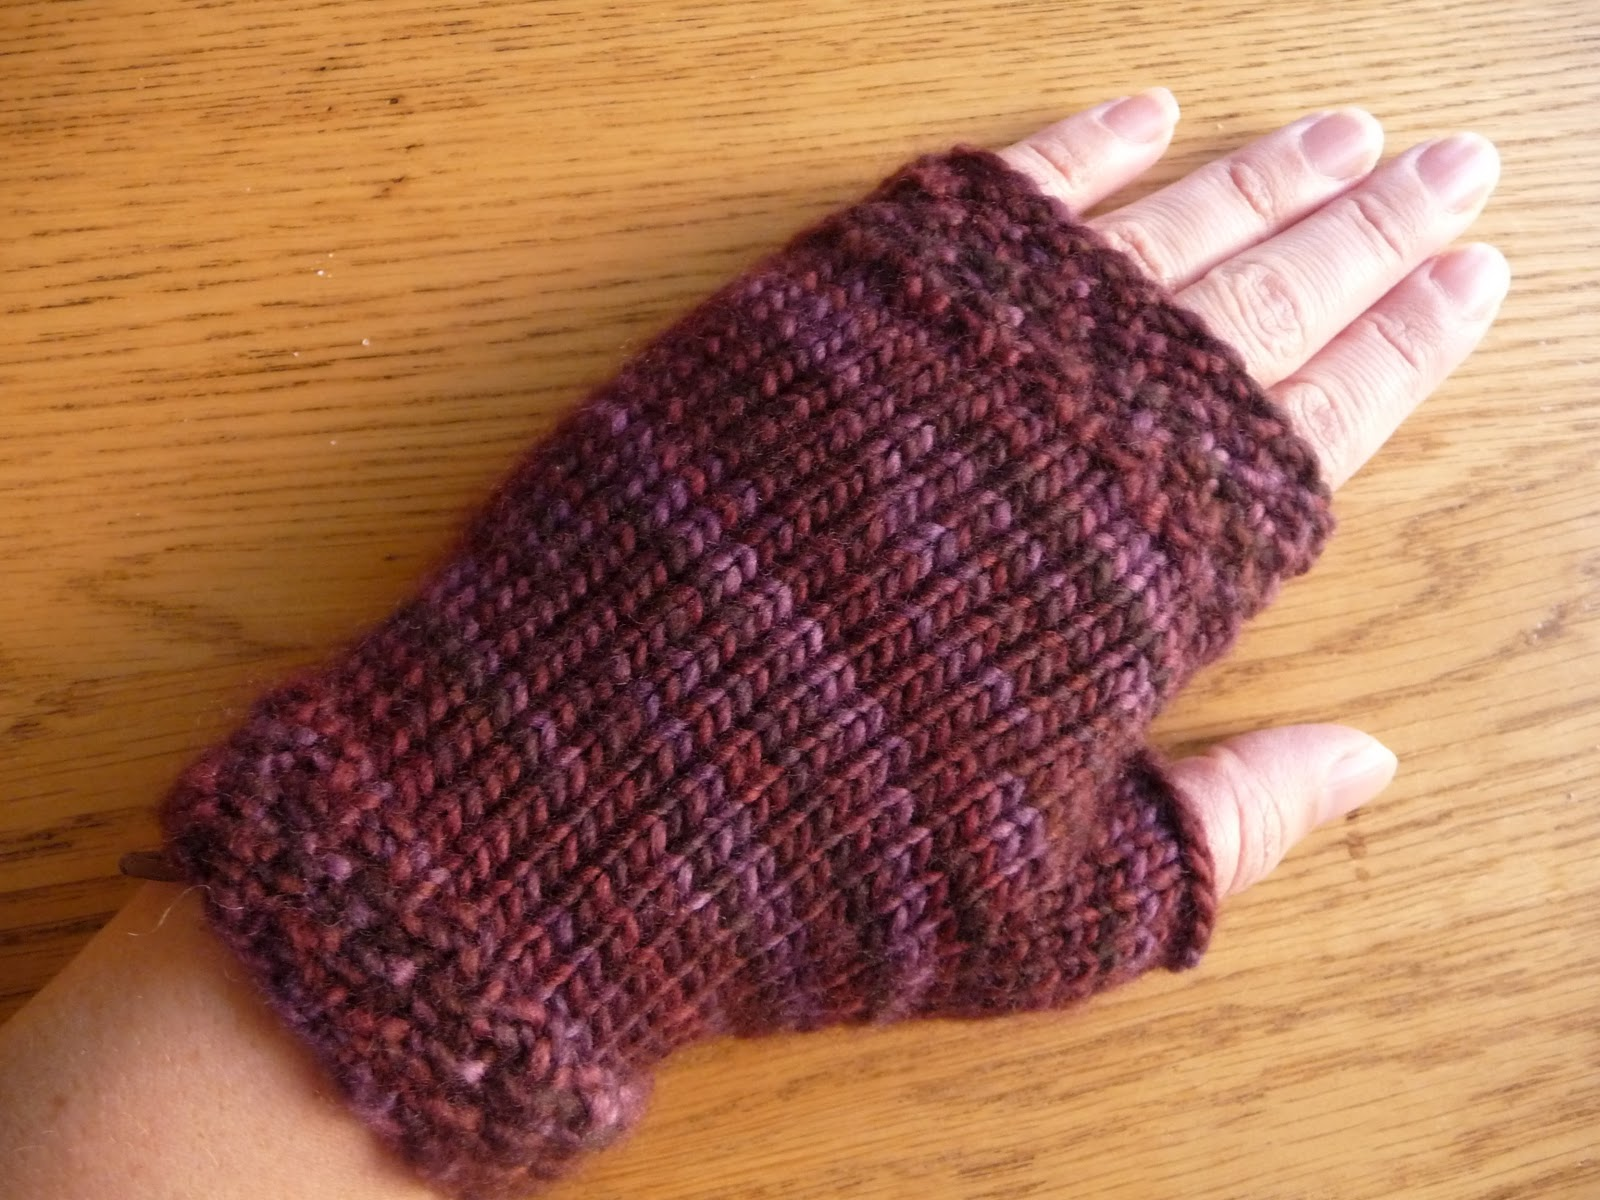 Free Knitting Pattern Doll Mittens : Fingerless Mittens Knitting Pattern - My Patterns